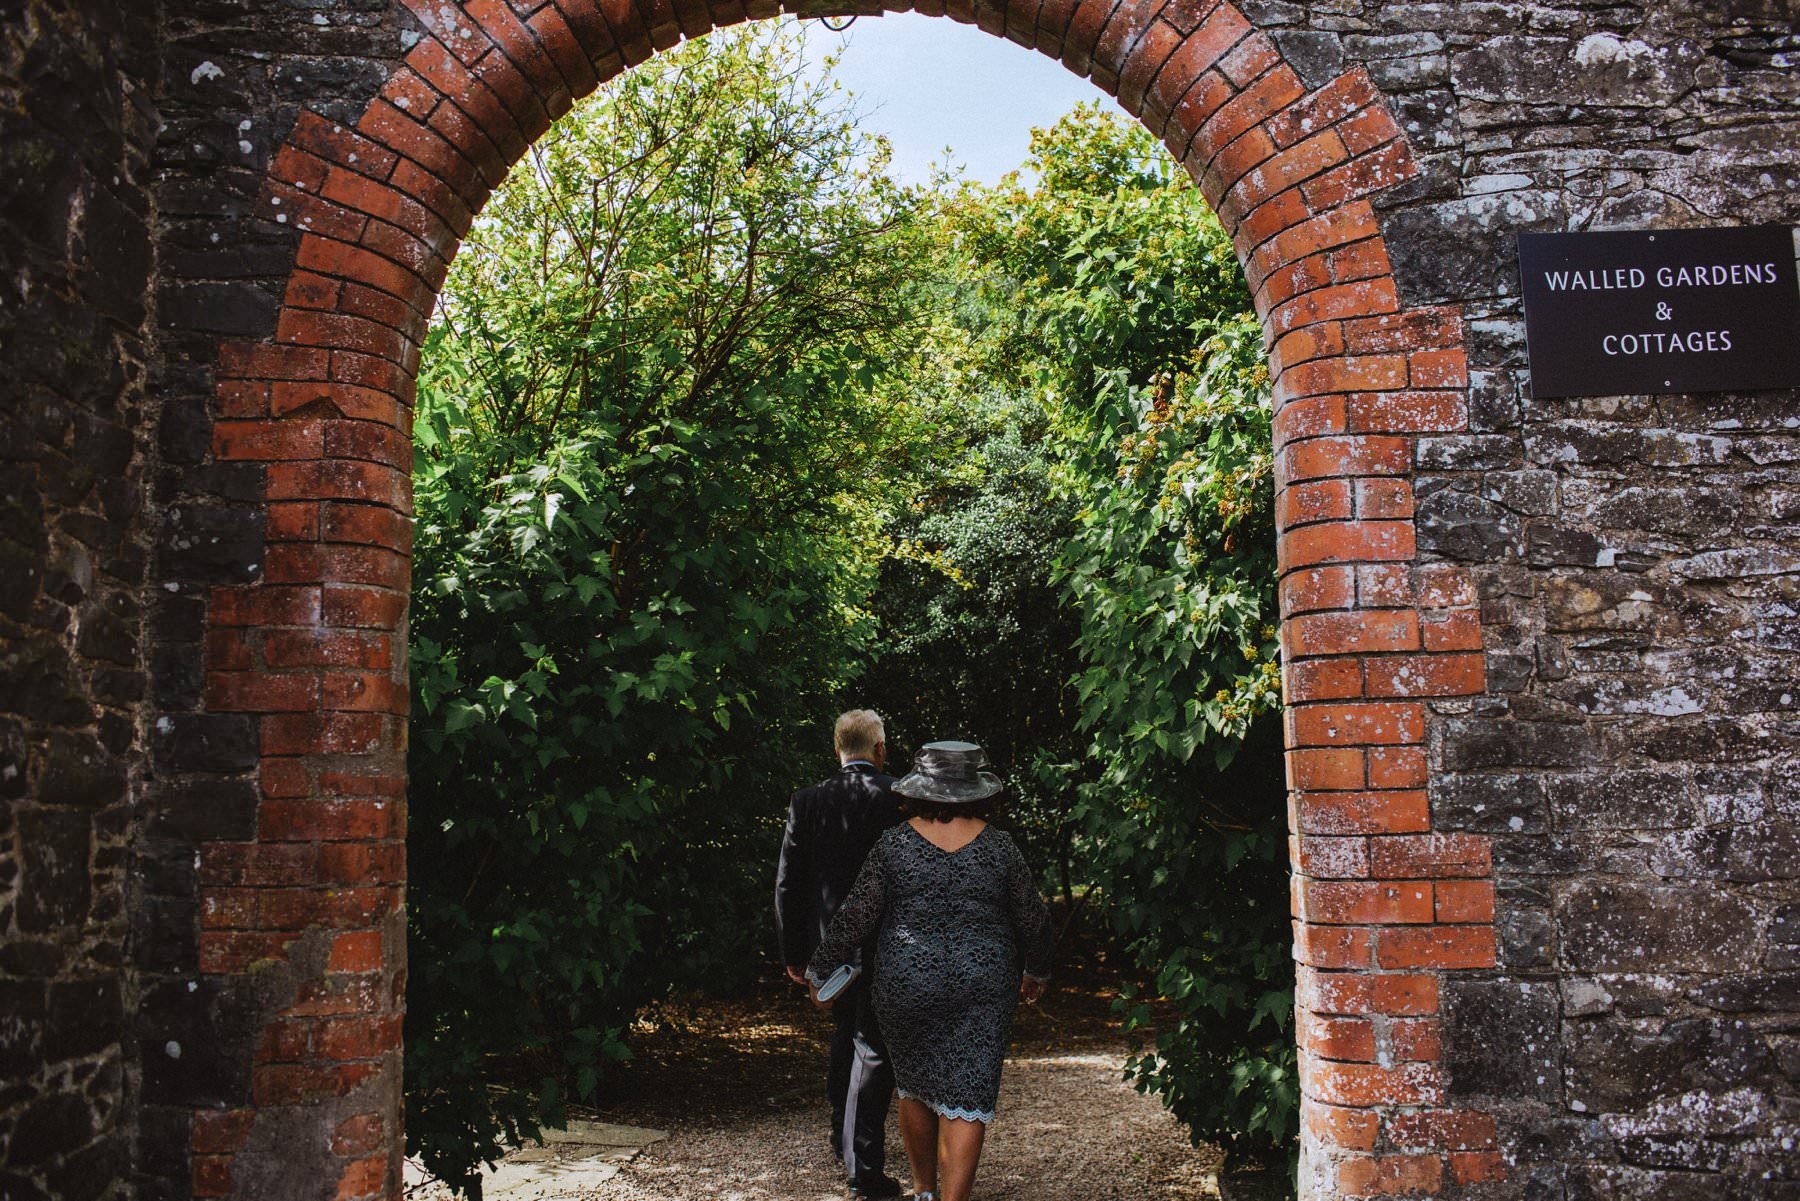 a man a woman both wedding guests walked to the gardens of larchfield estate